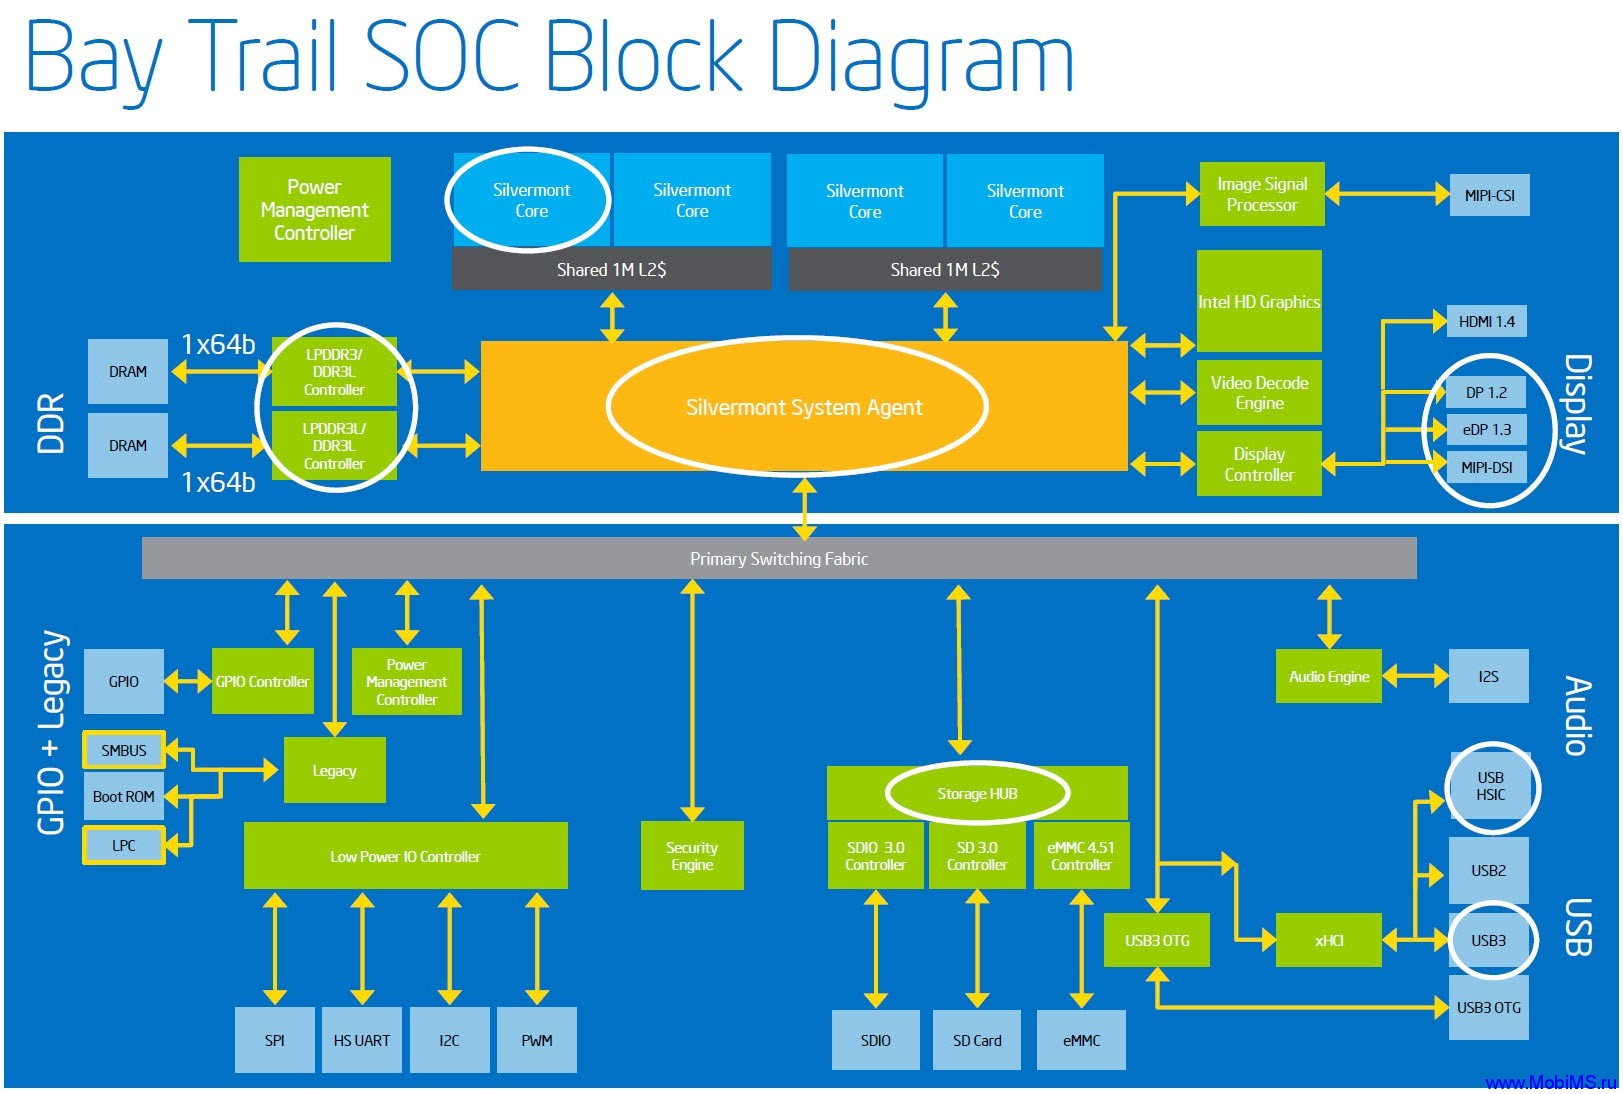 Bay-Trail-SOC-Block-Diagram